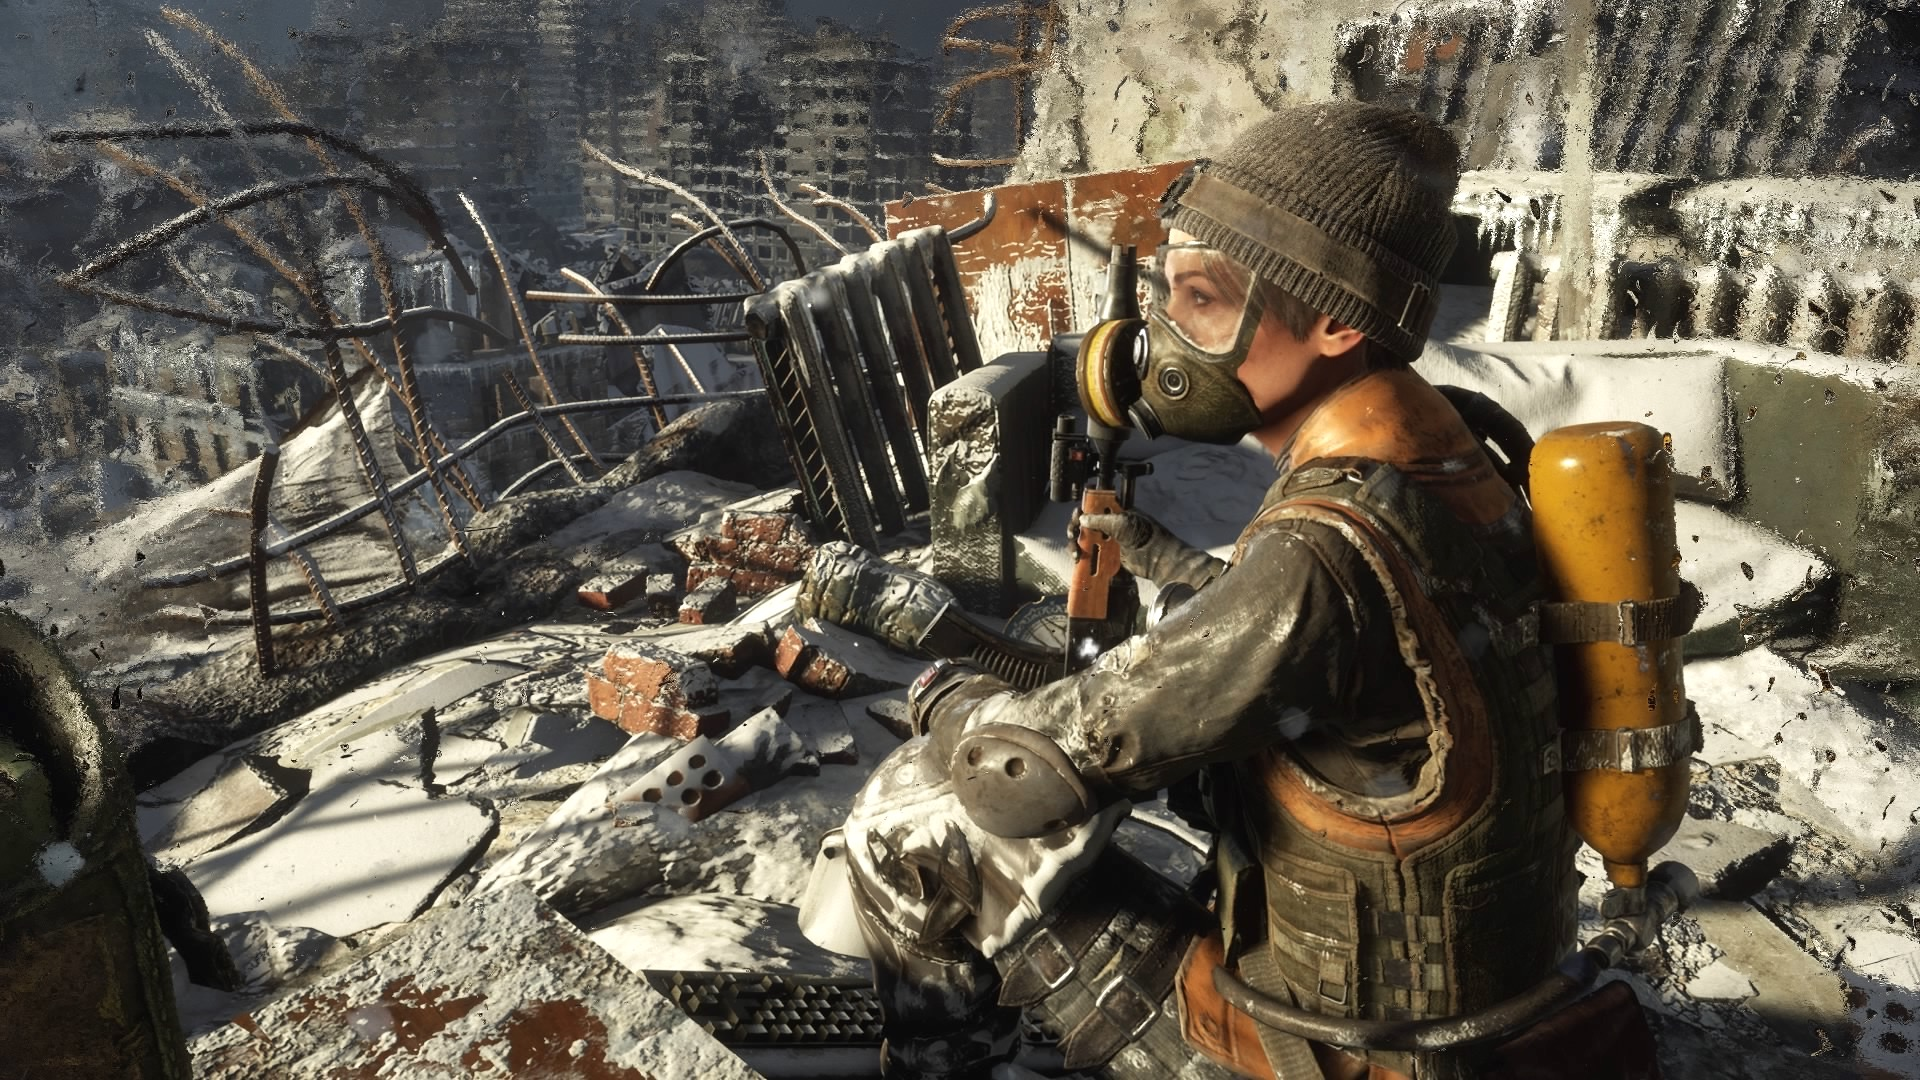 Metro Exodus PS4 Game Survival Horror 4A Games Review.jpg